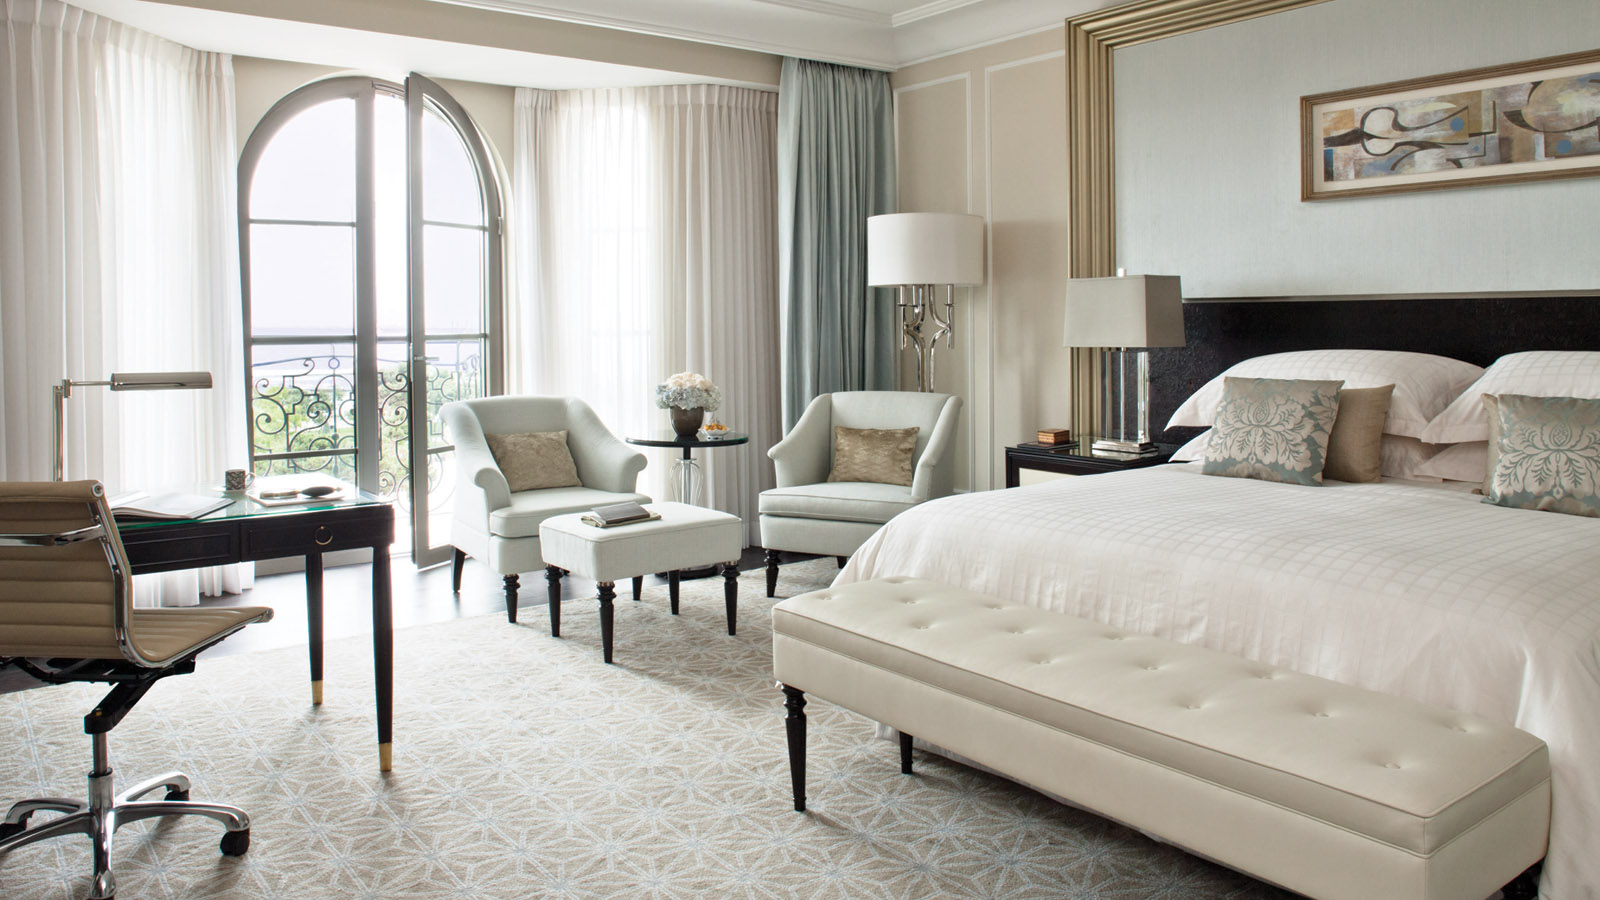 Four Seasons Baku Luxury Hotel Room